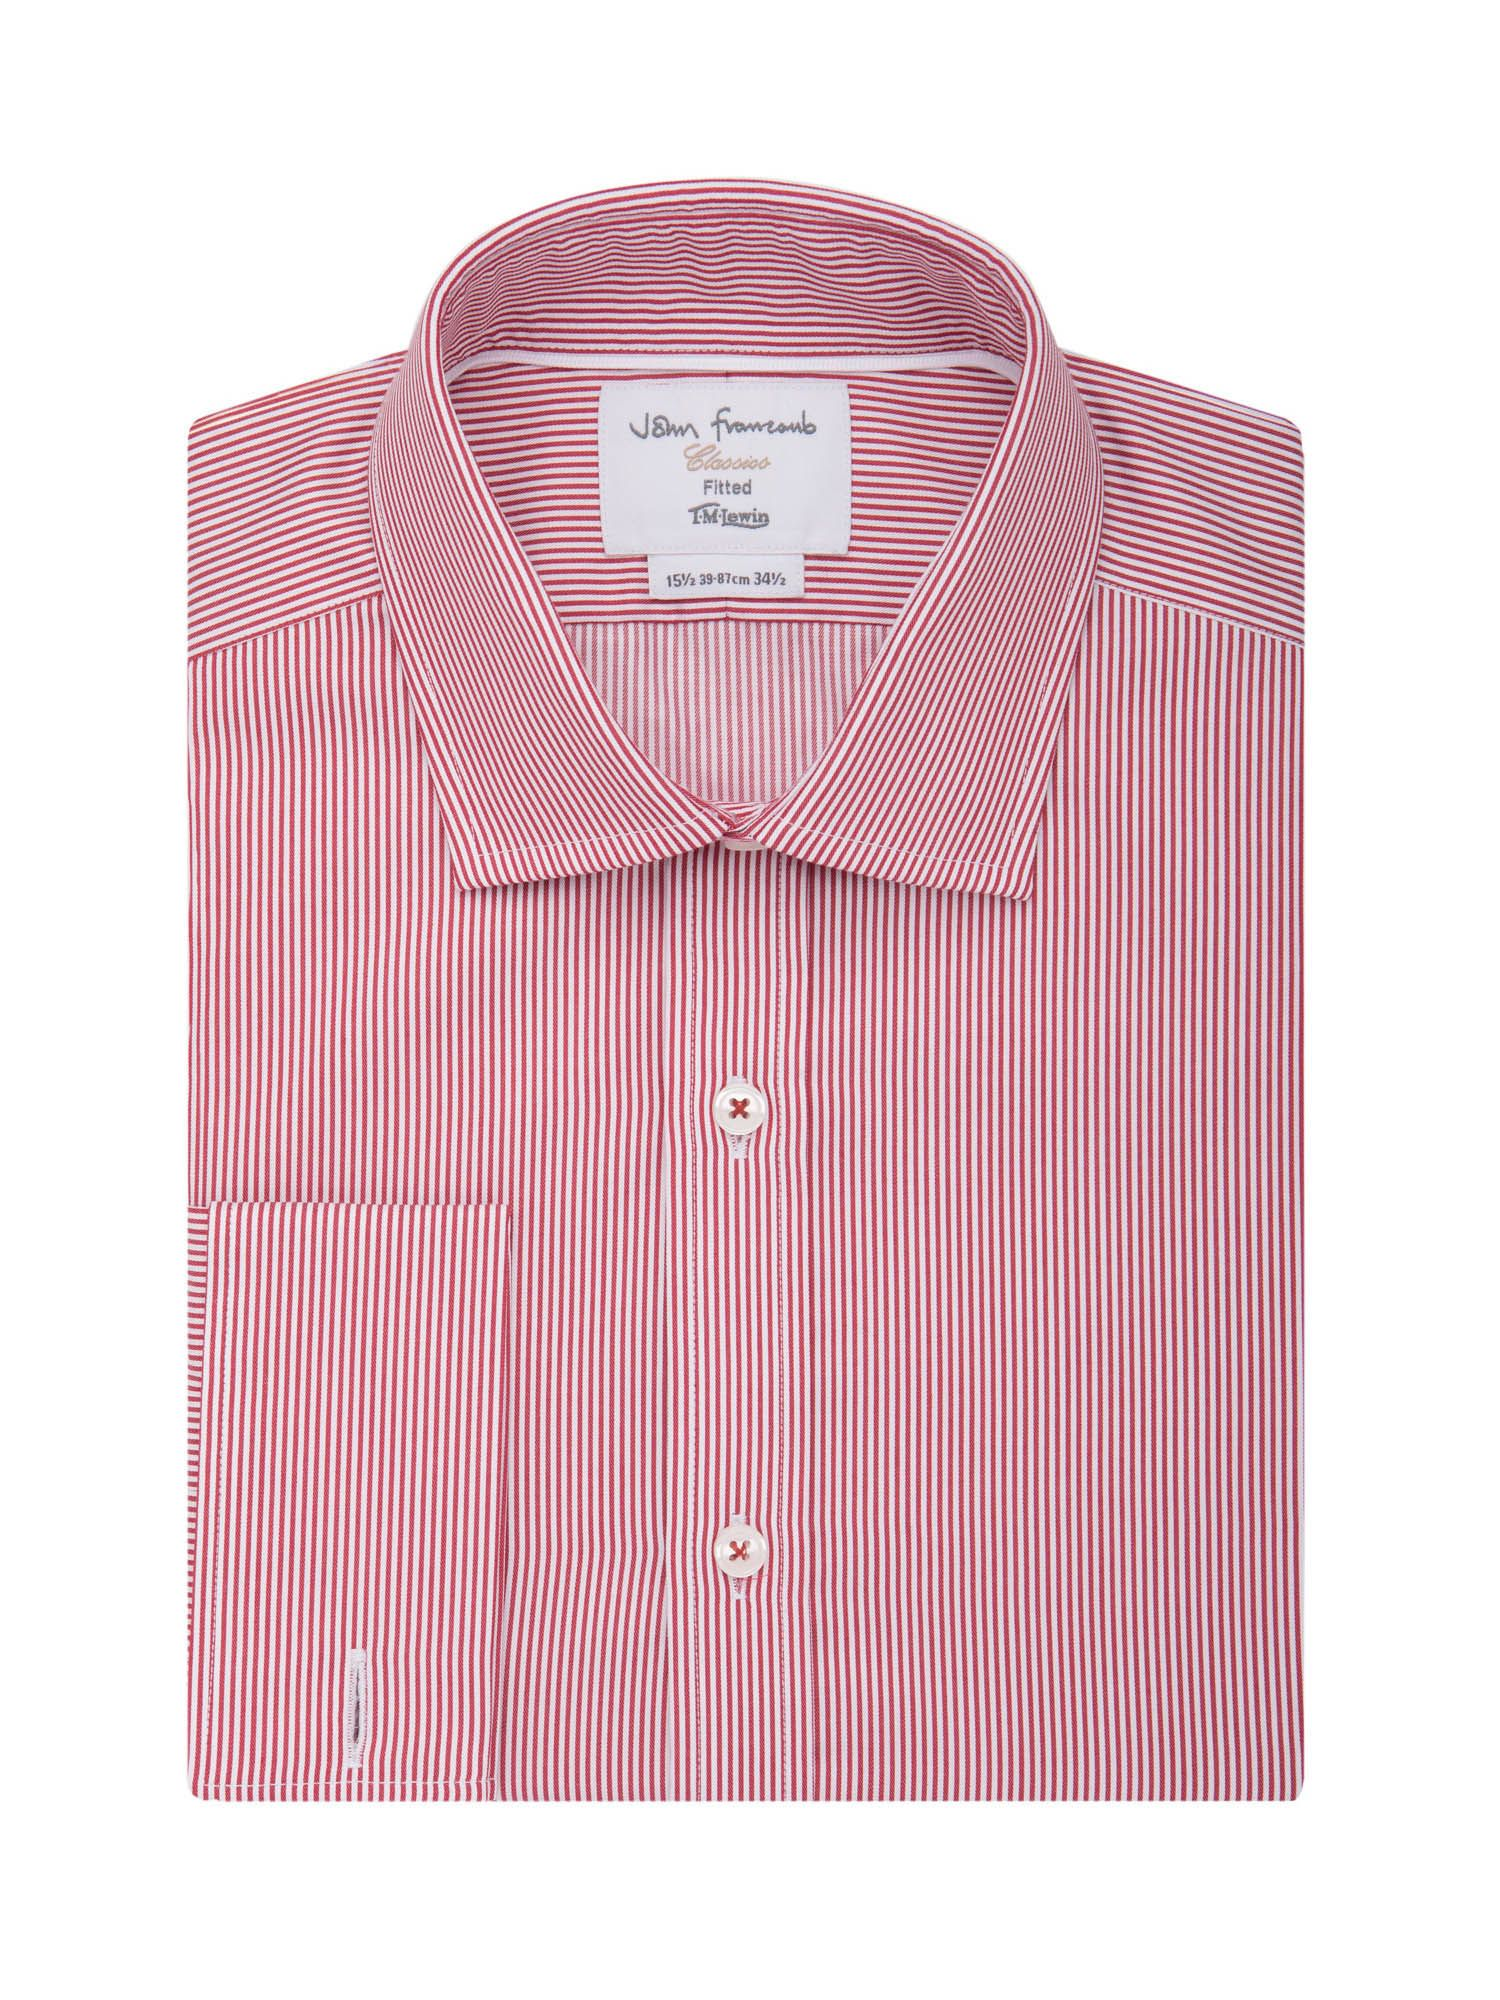 TM Lewin Men's TM Lewin Stripe Fully Fitted Classic Collar Formal Shirt, Red